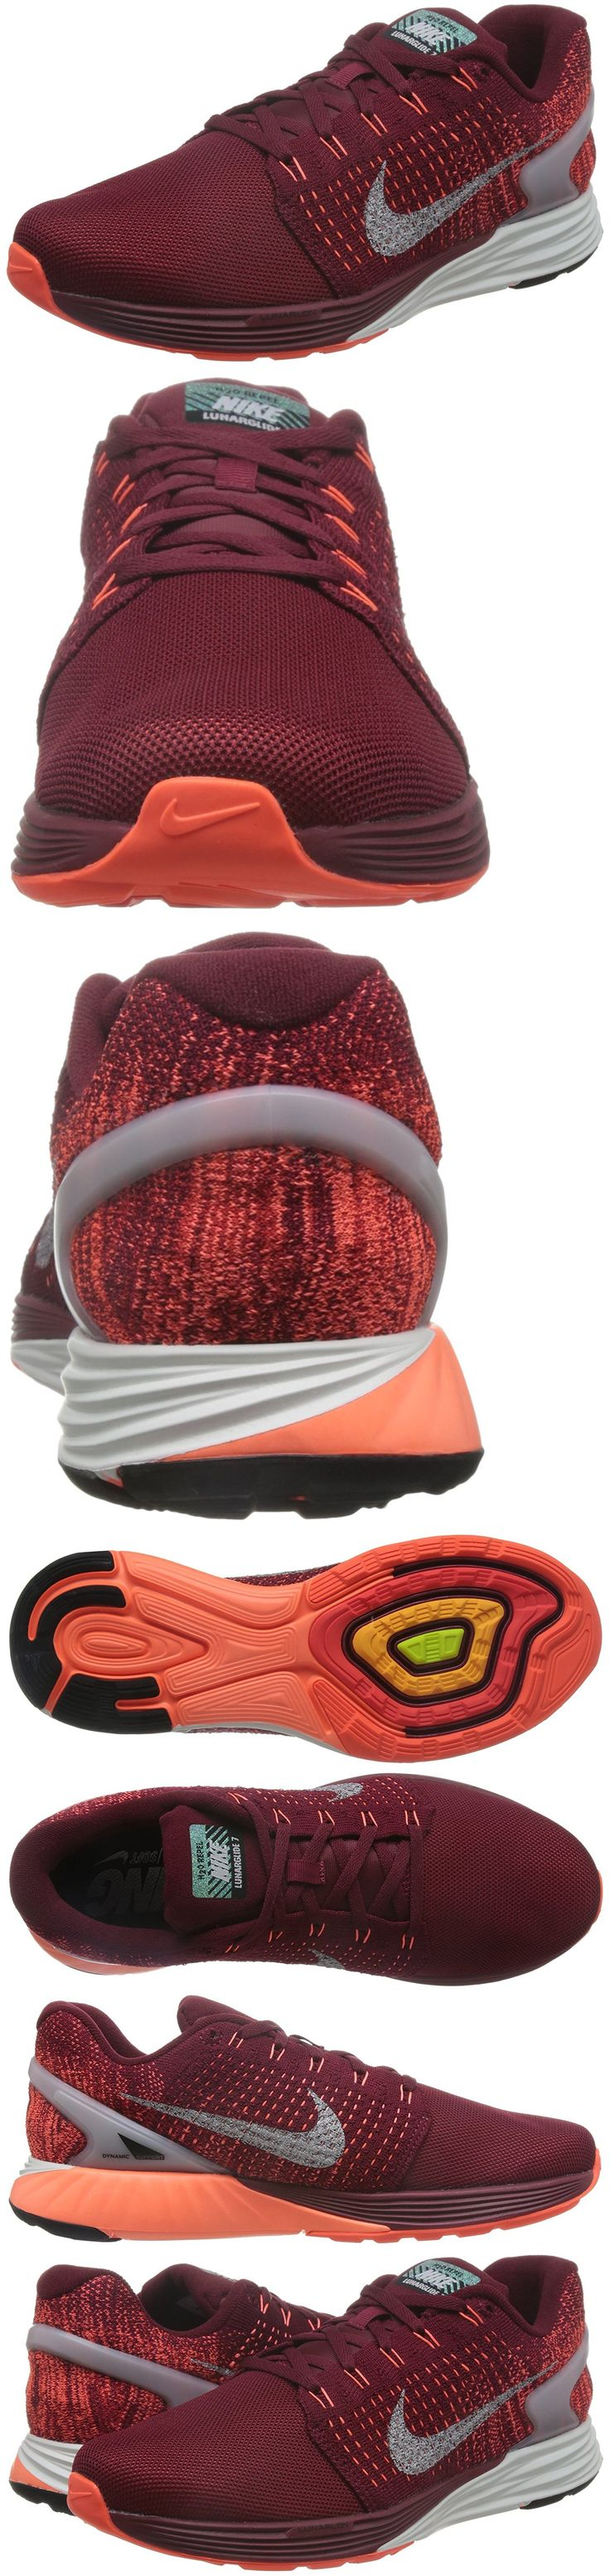 $54.02 - Nike Lunarglide 7 Flash Mens Running Trainers 803566 Sneakers Shoes (US 11.5 #shoes #nike #men #departments #shops